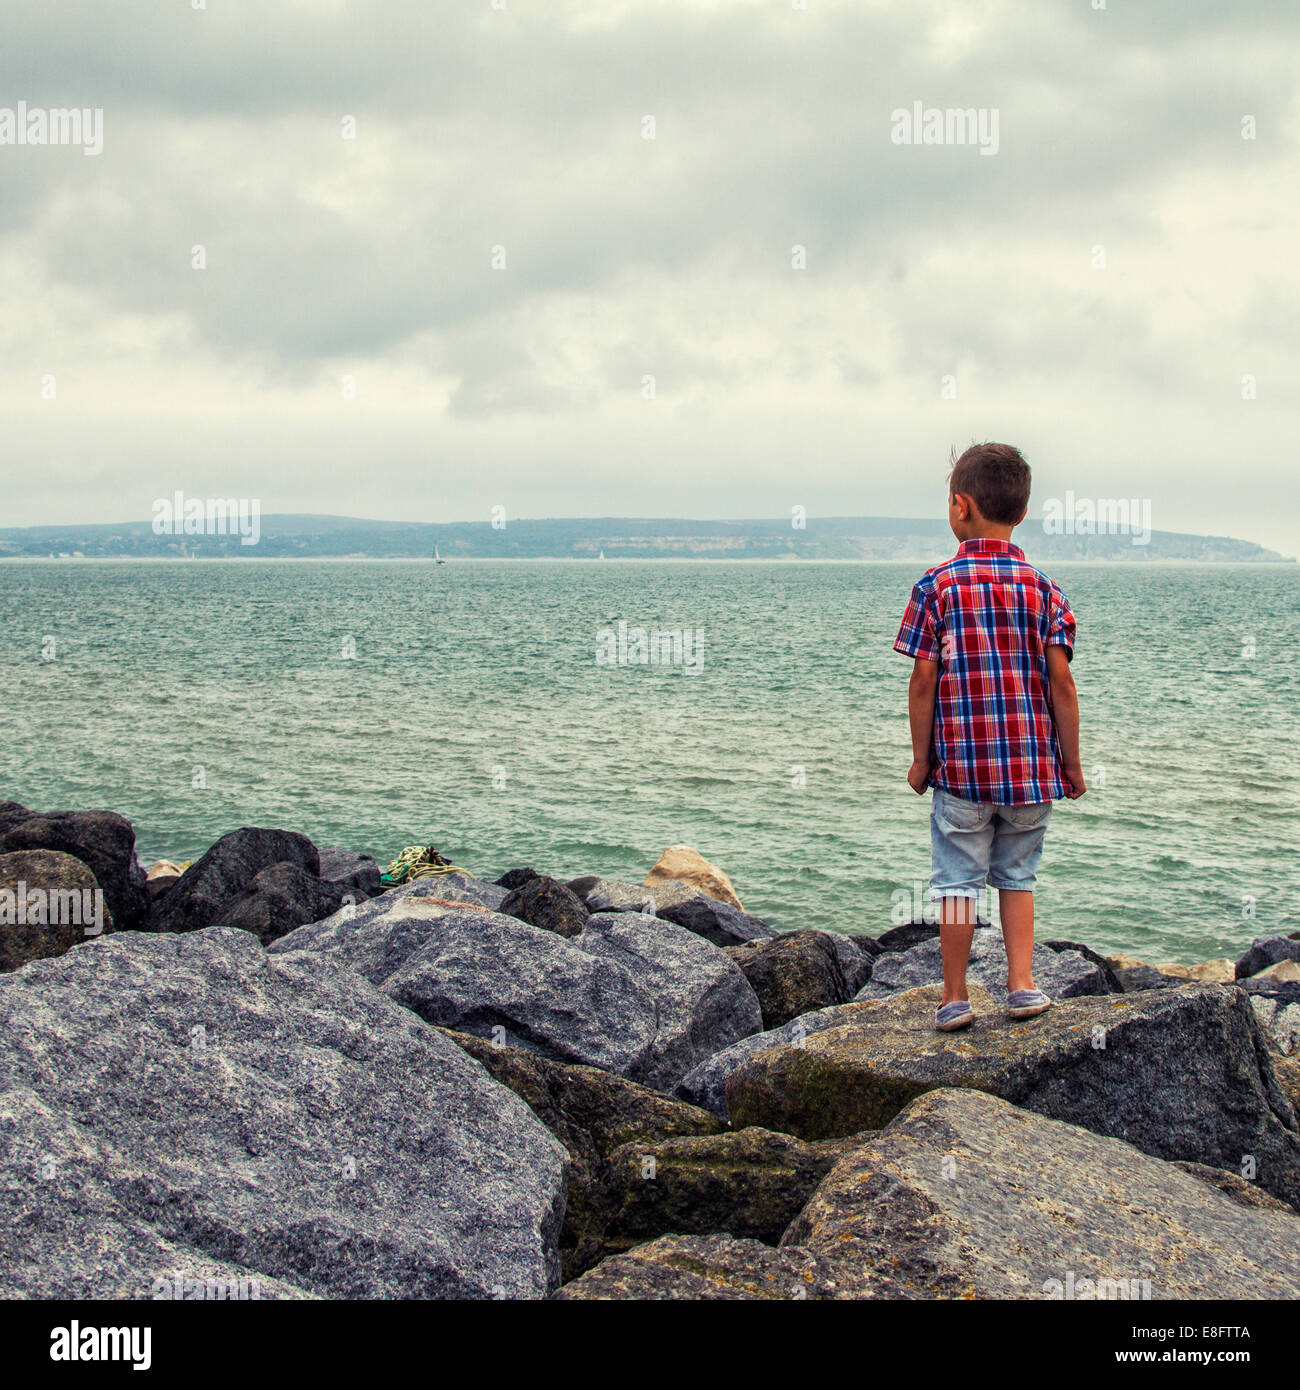 Boy standing on rocks looking at sea - Stock Image